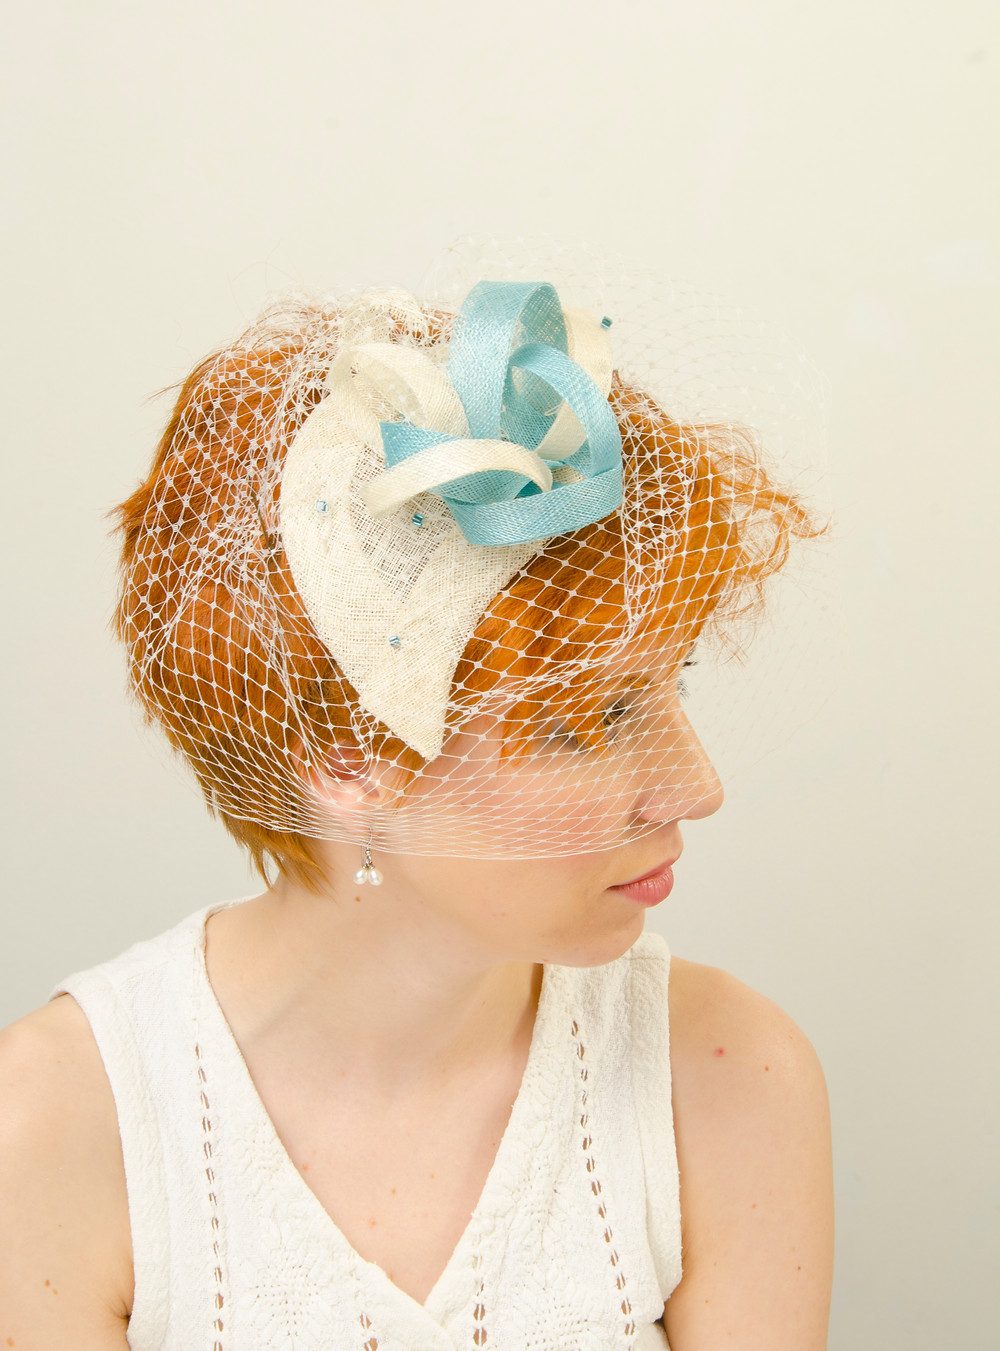 Today has been a very exciting day. We have had our first workshop booked through our new website.  This is the first headpiece I made in my first workshop many years ago. Since making this we have come so far.